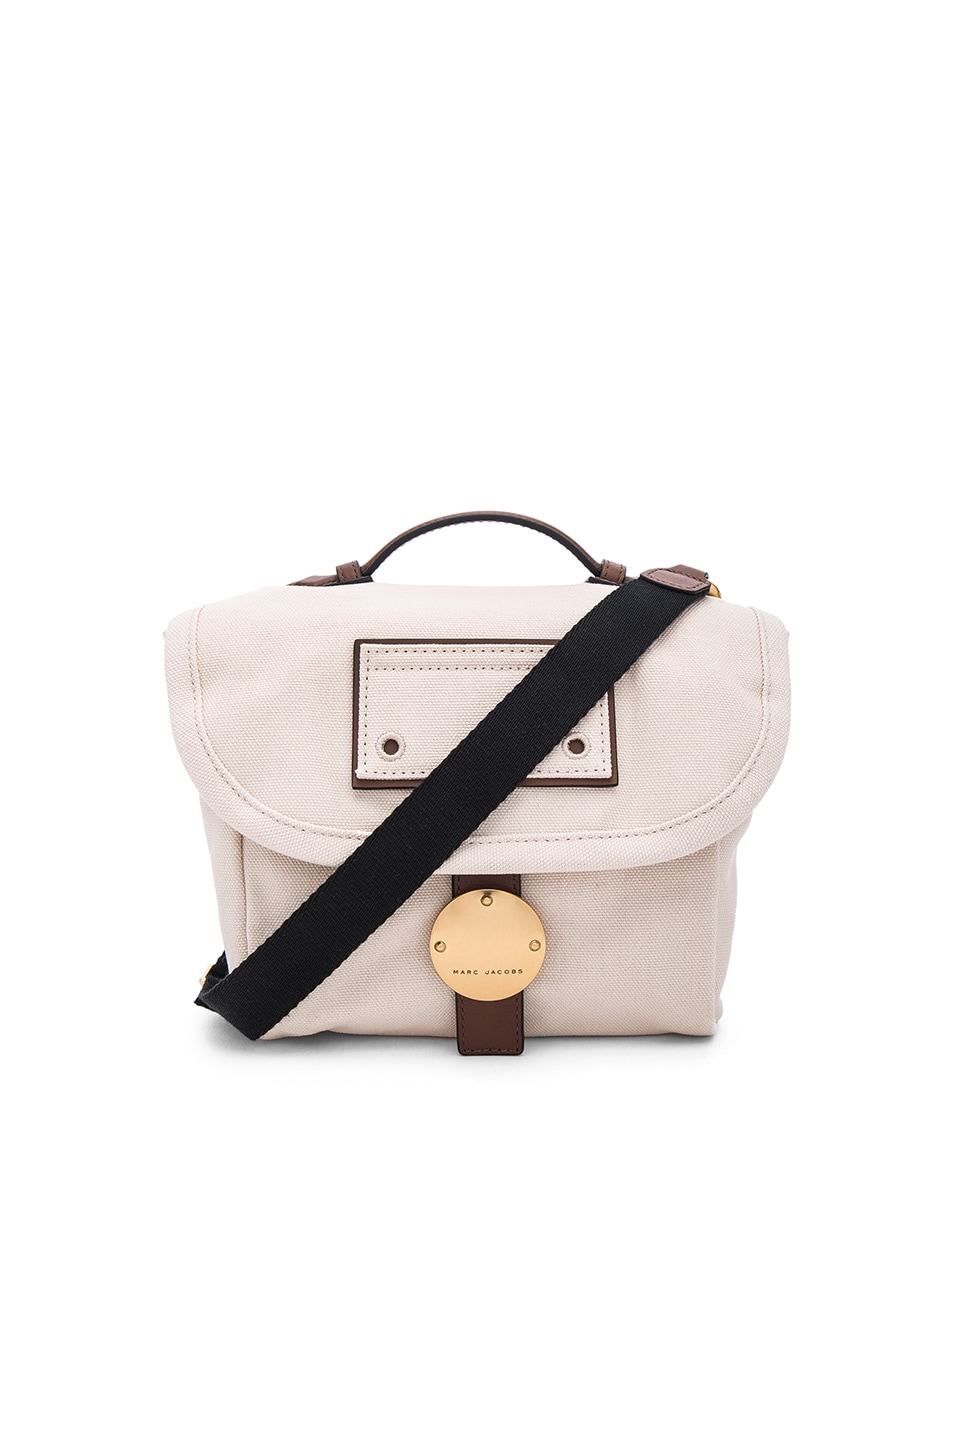 Marc Jacobs Canvas & Leather Camera Bag in Ecru Multi